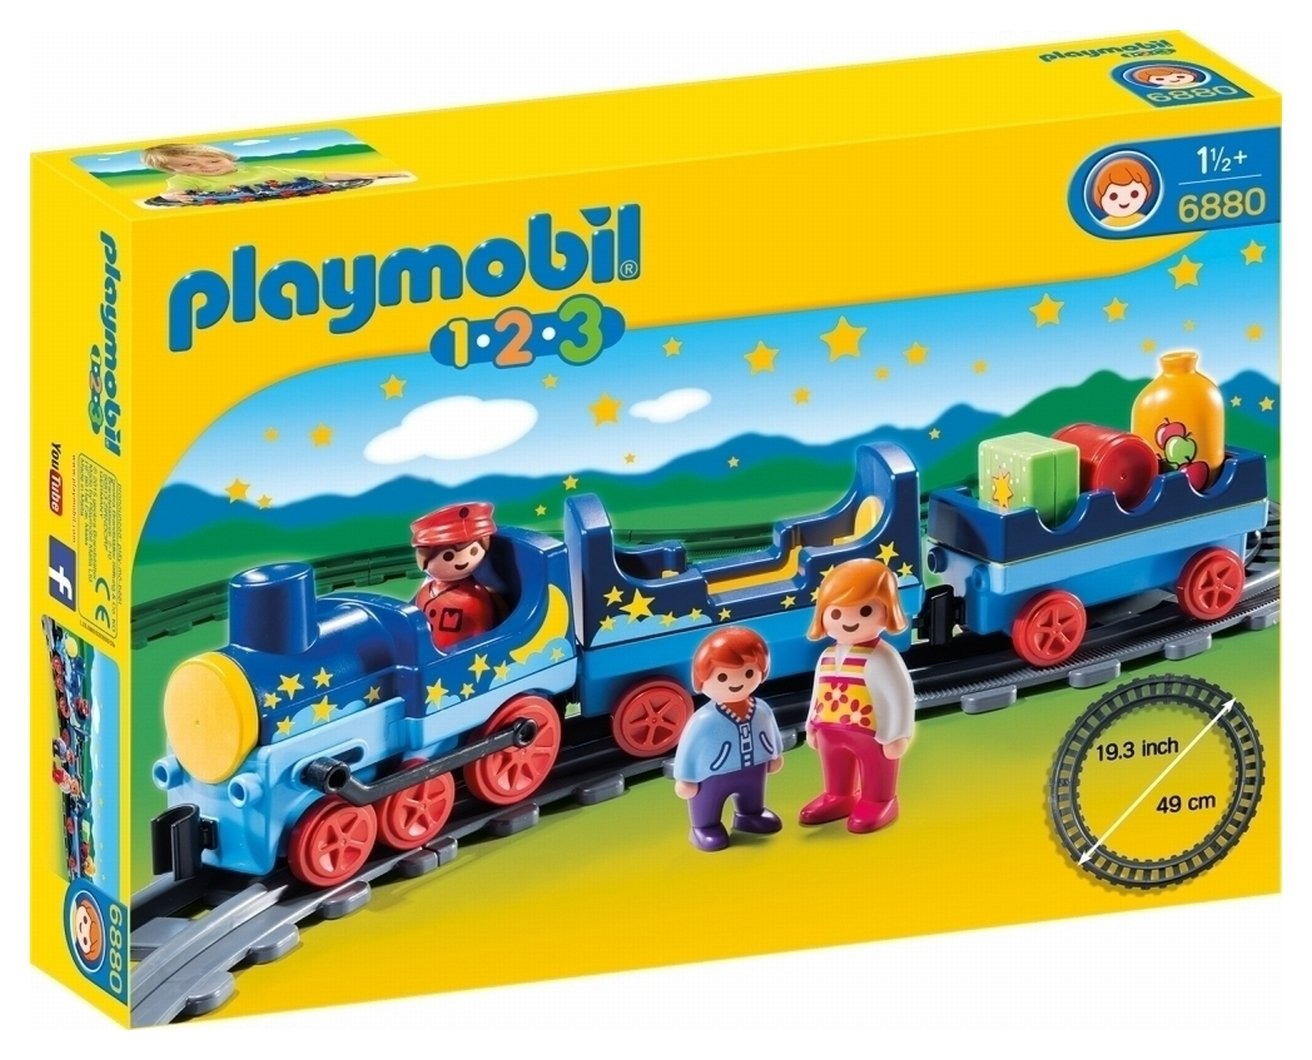 Playmobil 6880 123 Night Train with Track